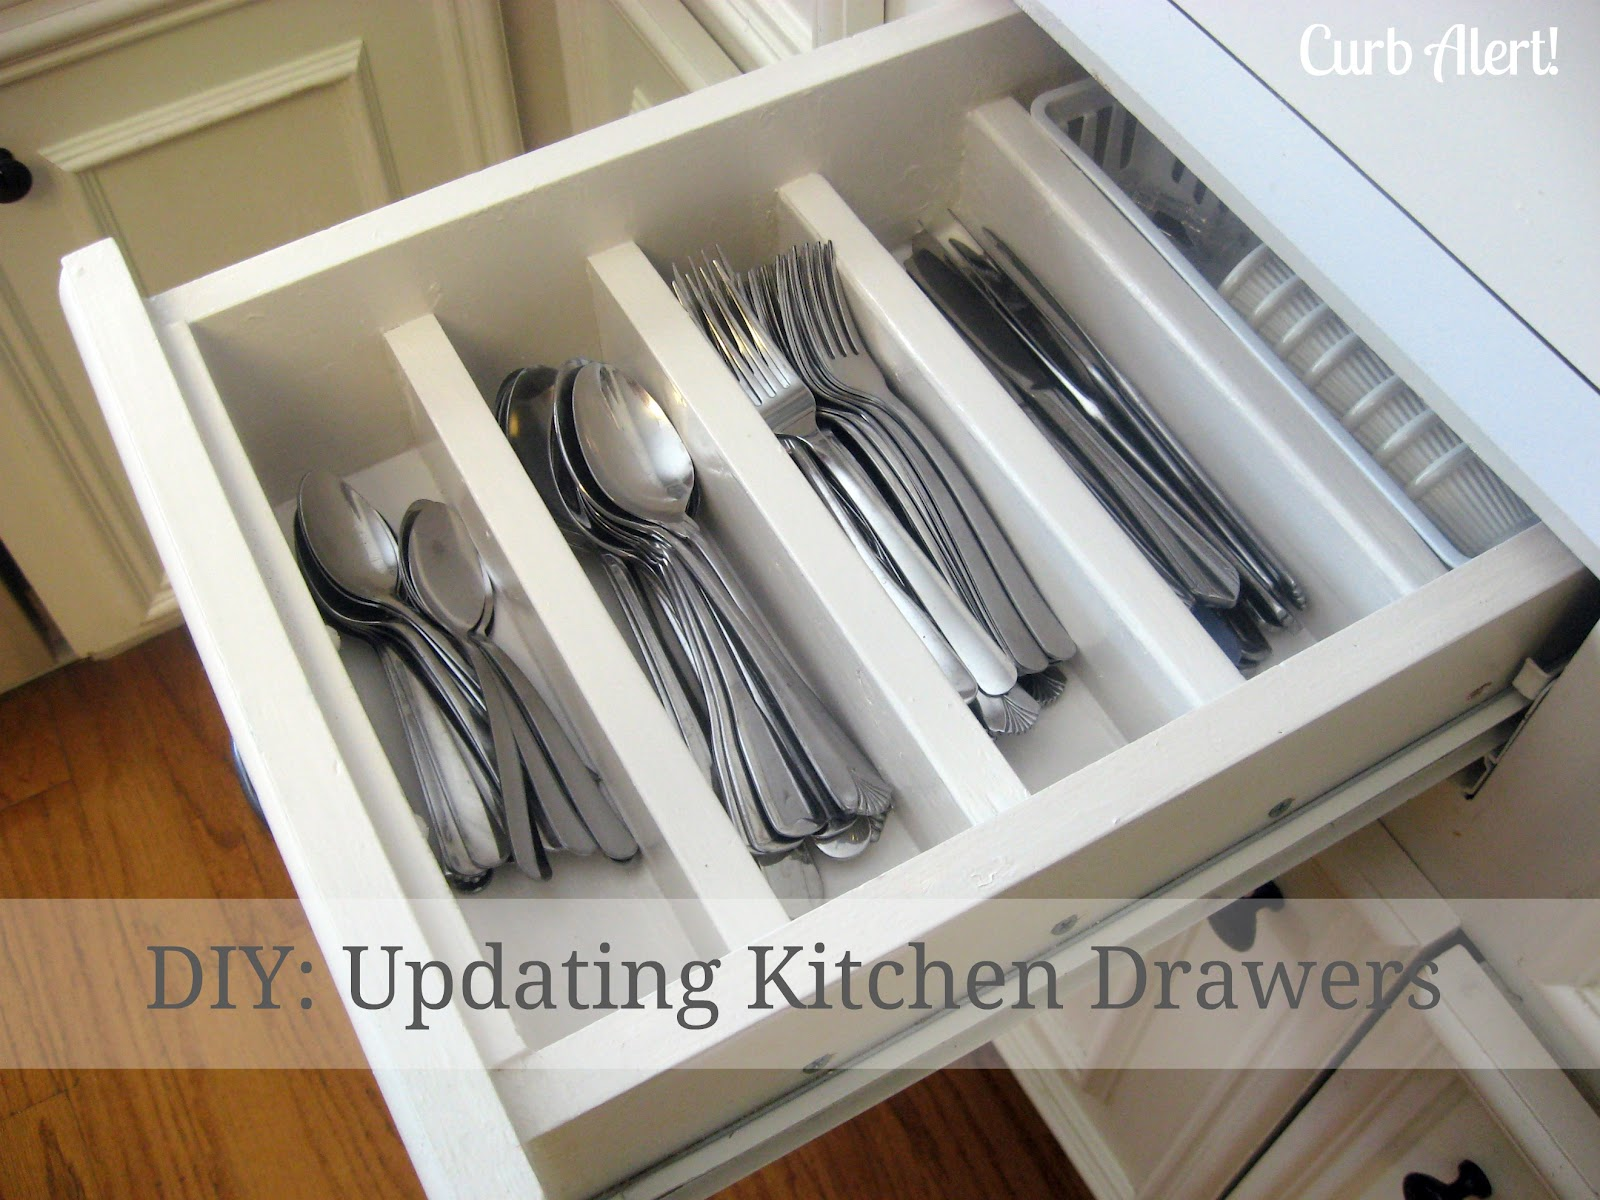 organizers after harmonydrawer harmony organizer drawer product cooking insert utensil flatware affinity